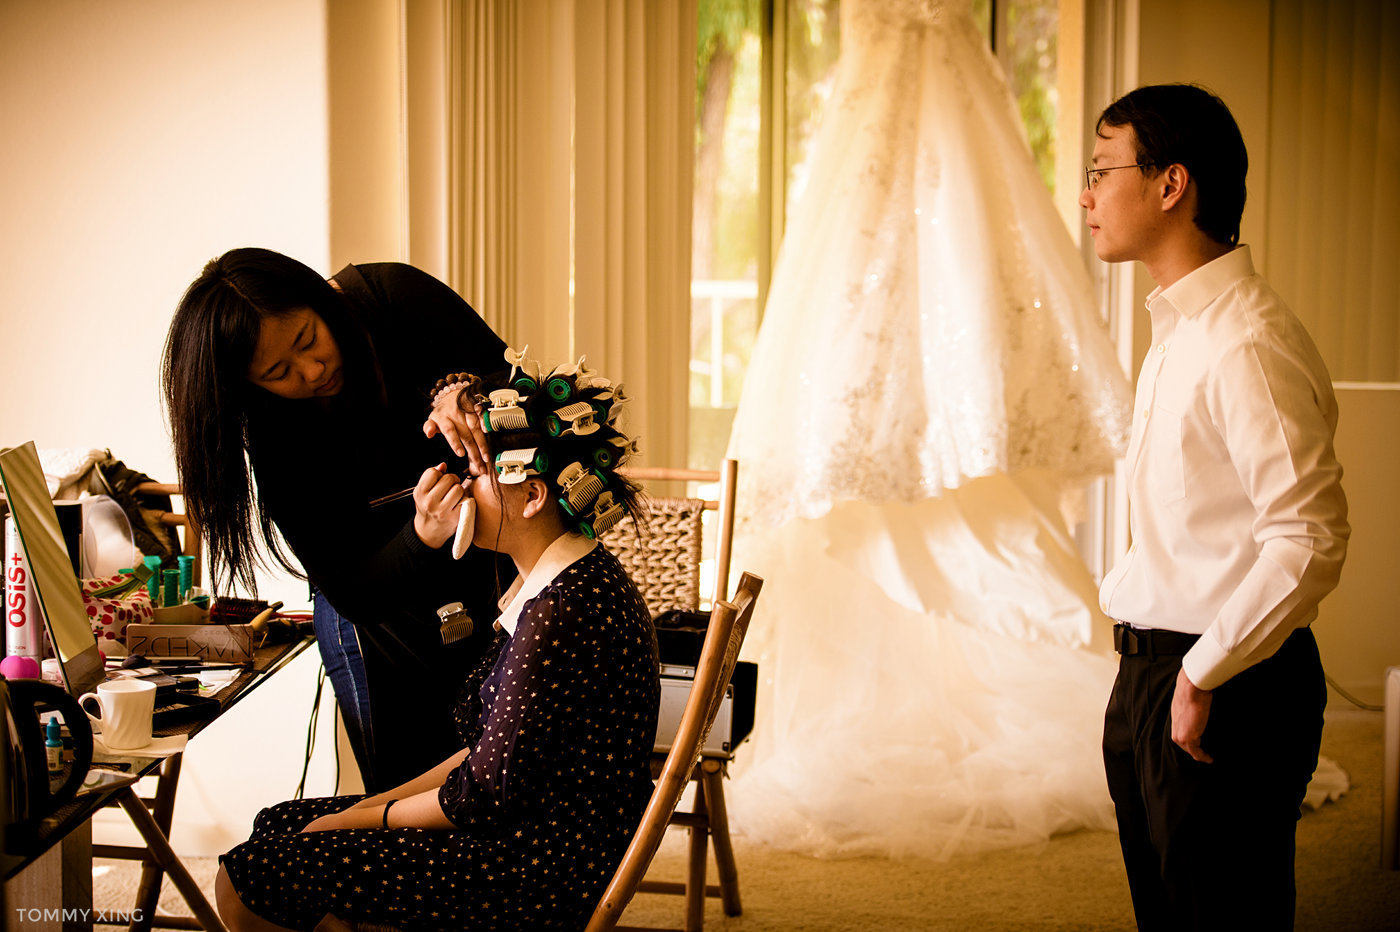 Qinglu Meng & Daozheng Chen Wedding Slideshow-16-E.JPG